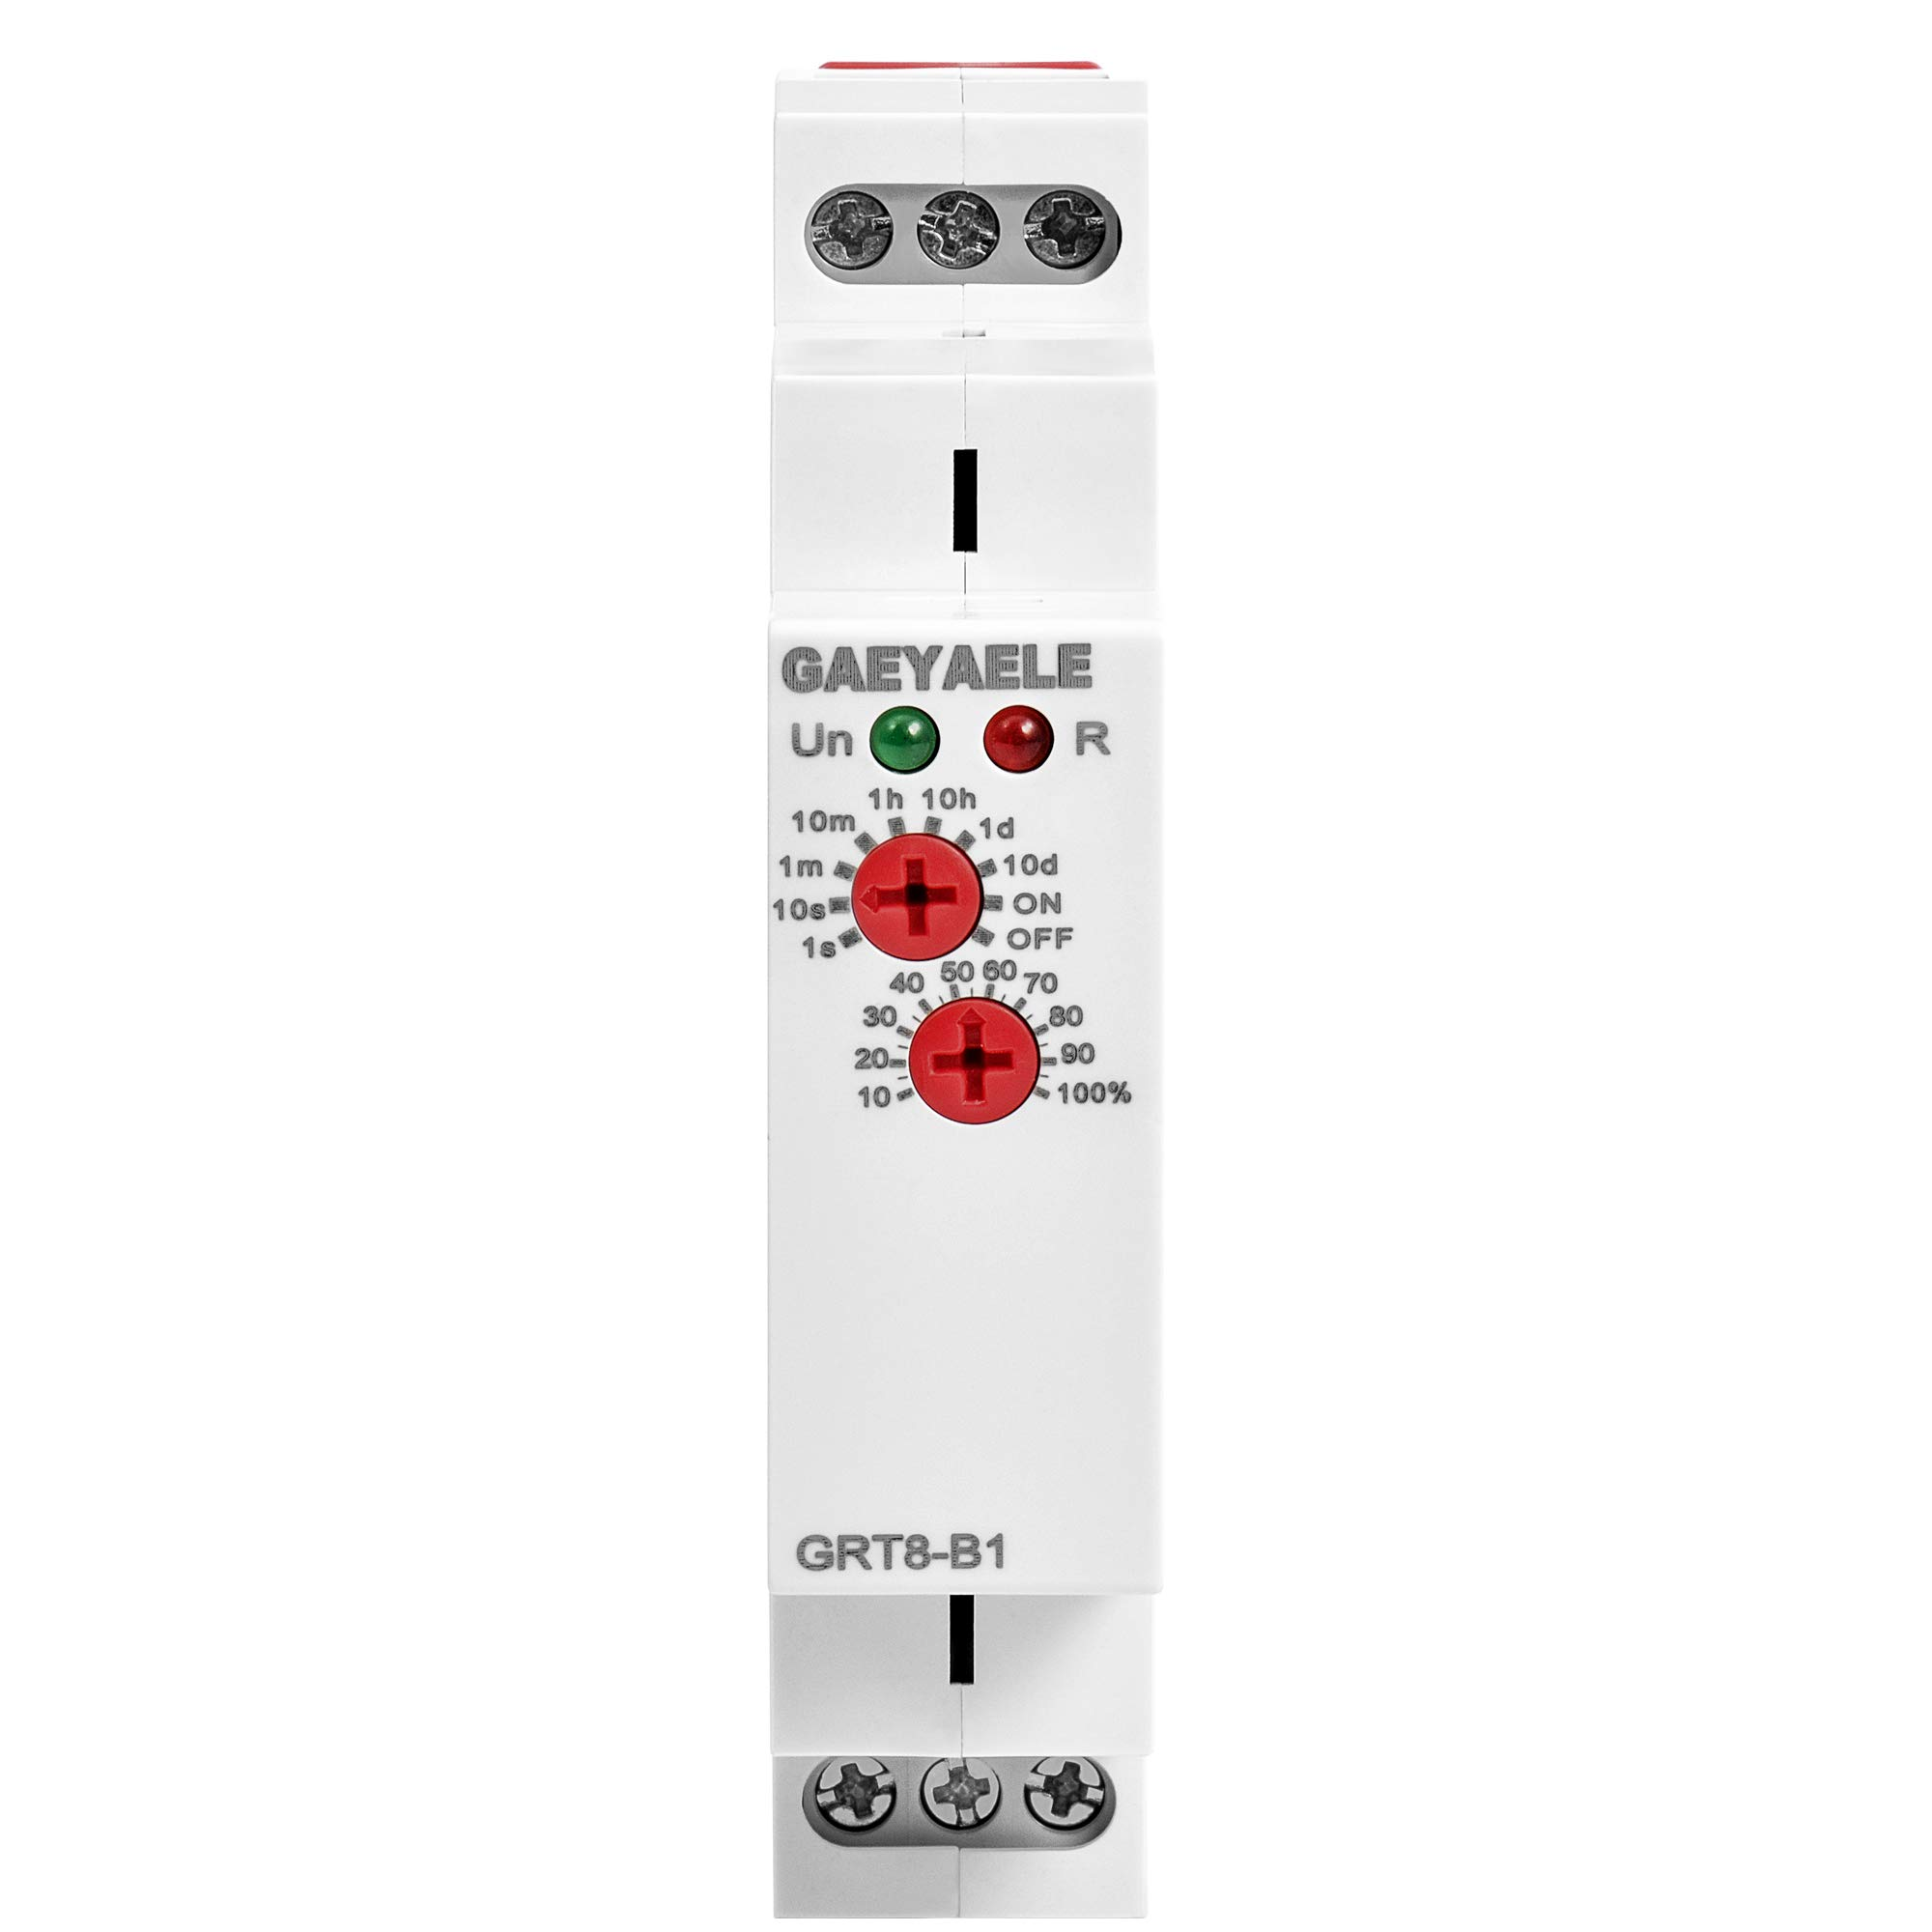 GAEYAELE GRT8-A1 B1 Delay Off Time Relay Electronic 16A AC230V OR AC/DC12-240V with CE CB Certificate(GRT8-B1,AC/DC12V-240V)